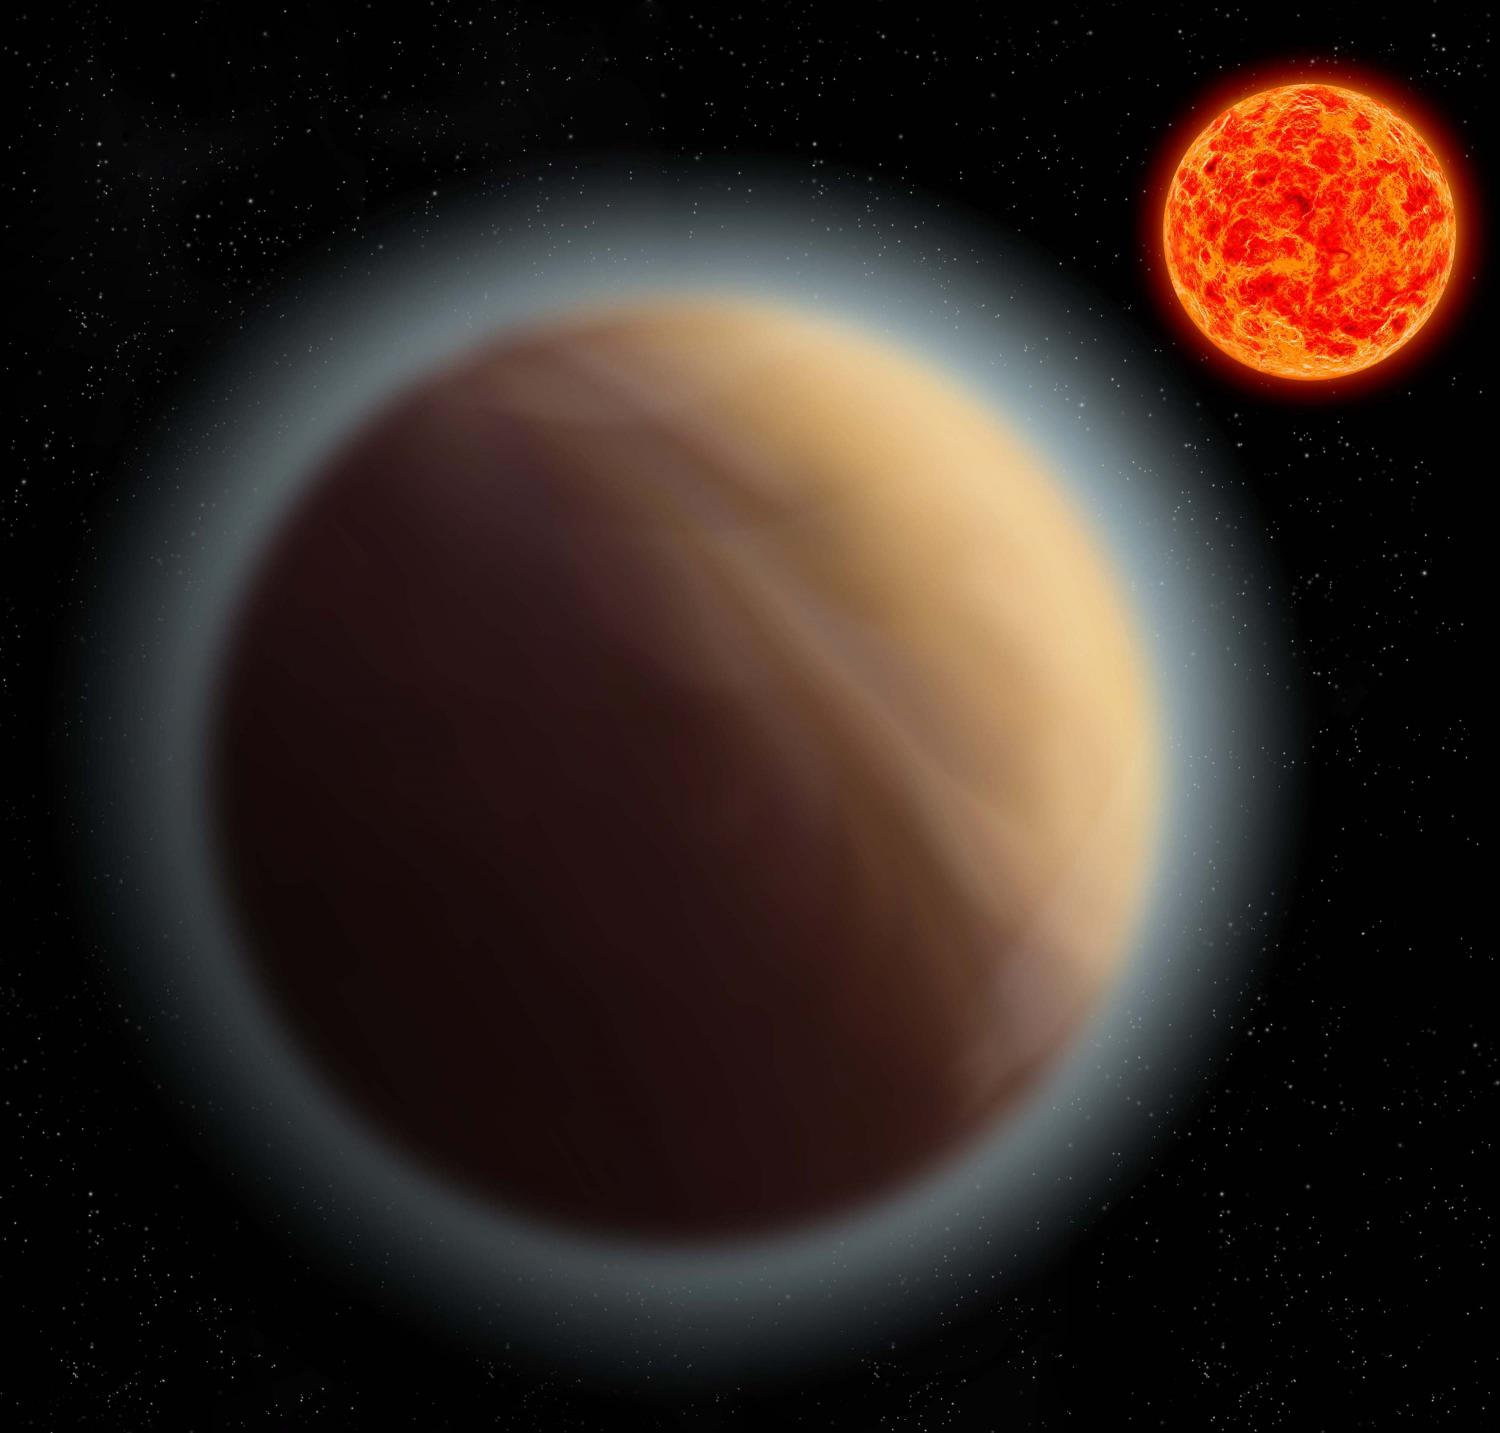 Earth-like Planet GJ 1132b has an Atmosphere around It